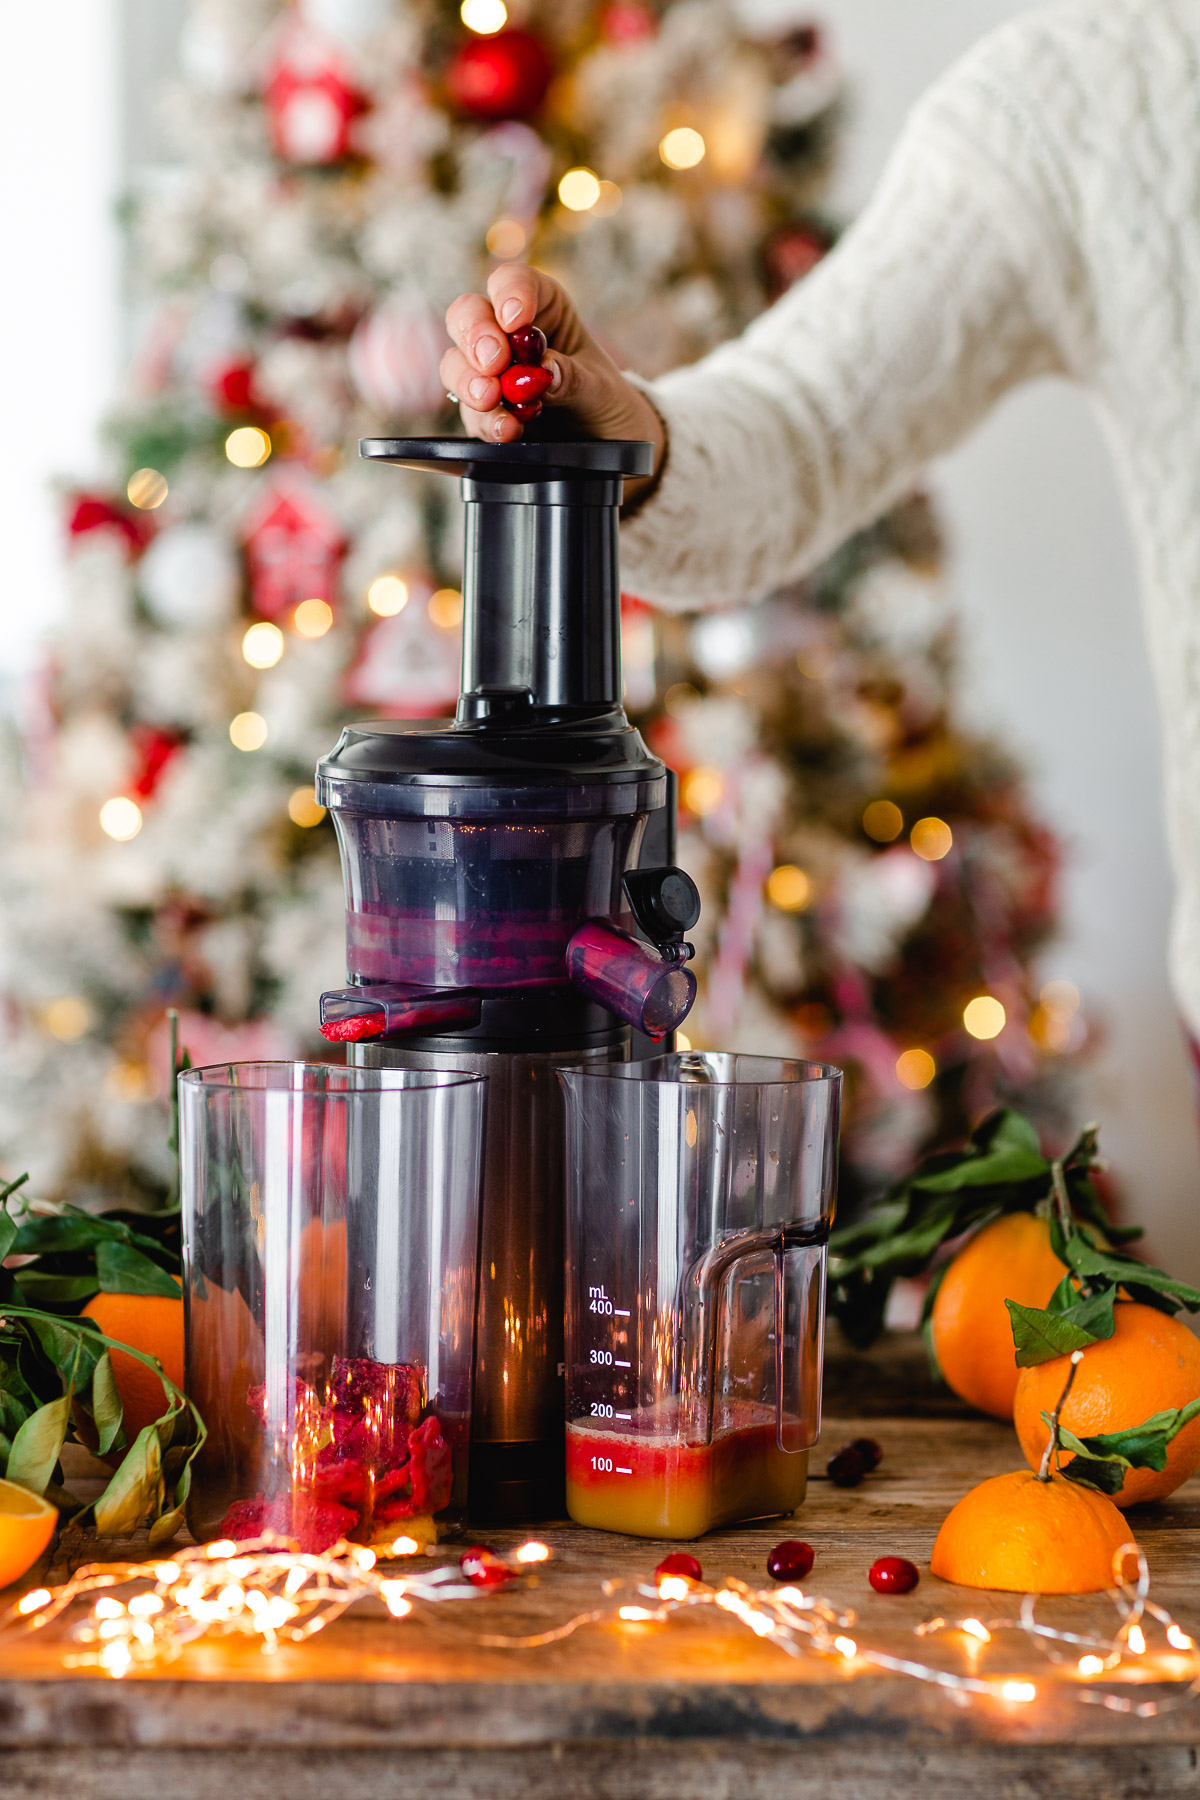 Ricetta SPRITZ di NATALE con succo di arance e cranberry mirtilli rossi How to make Winter Holiday Christmas Spritzer recipe with cranberry juice